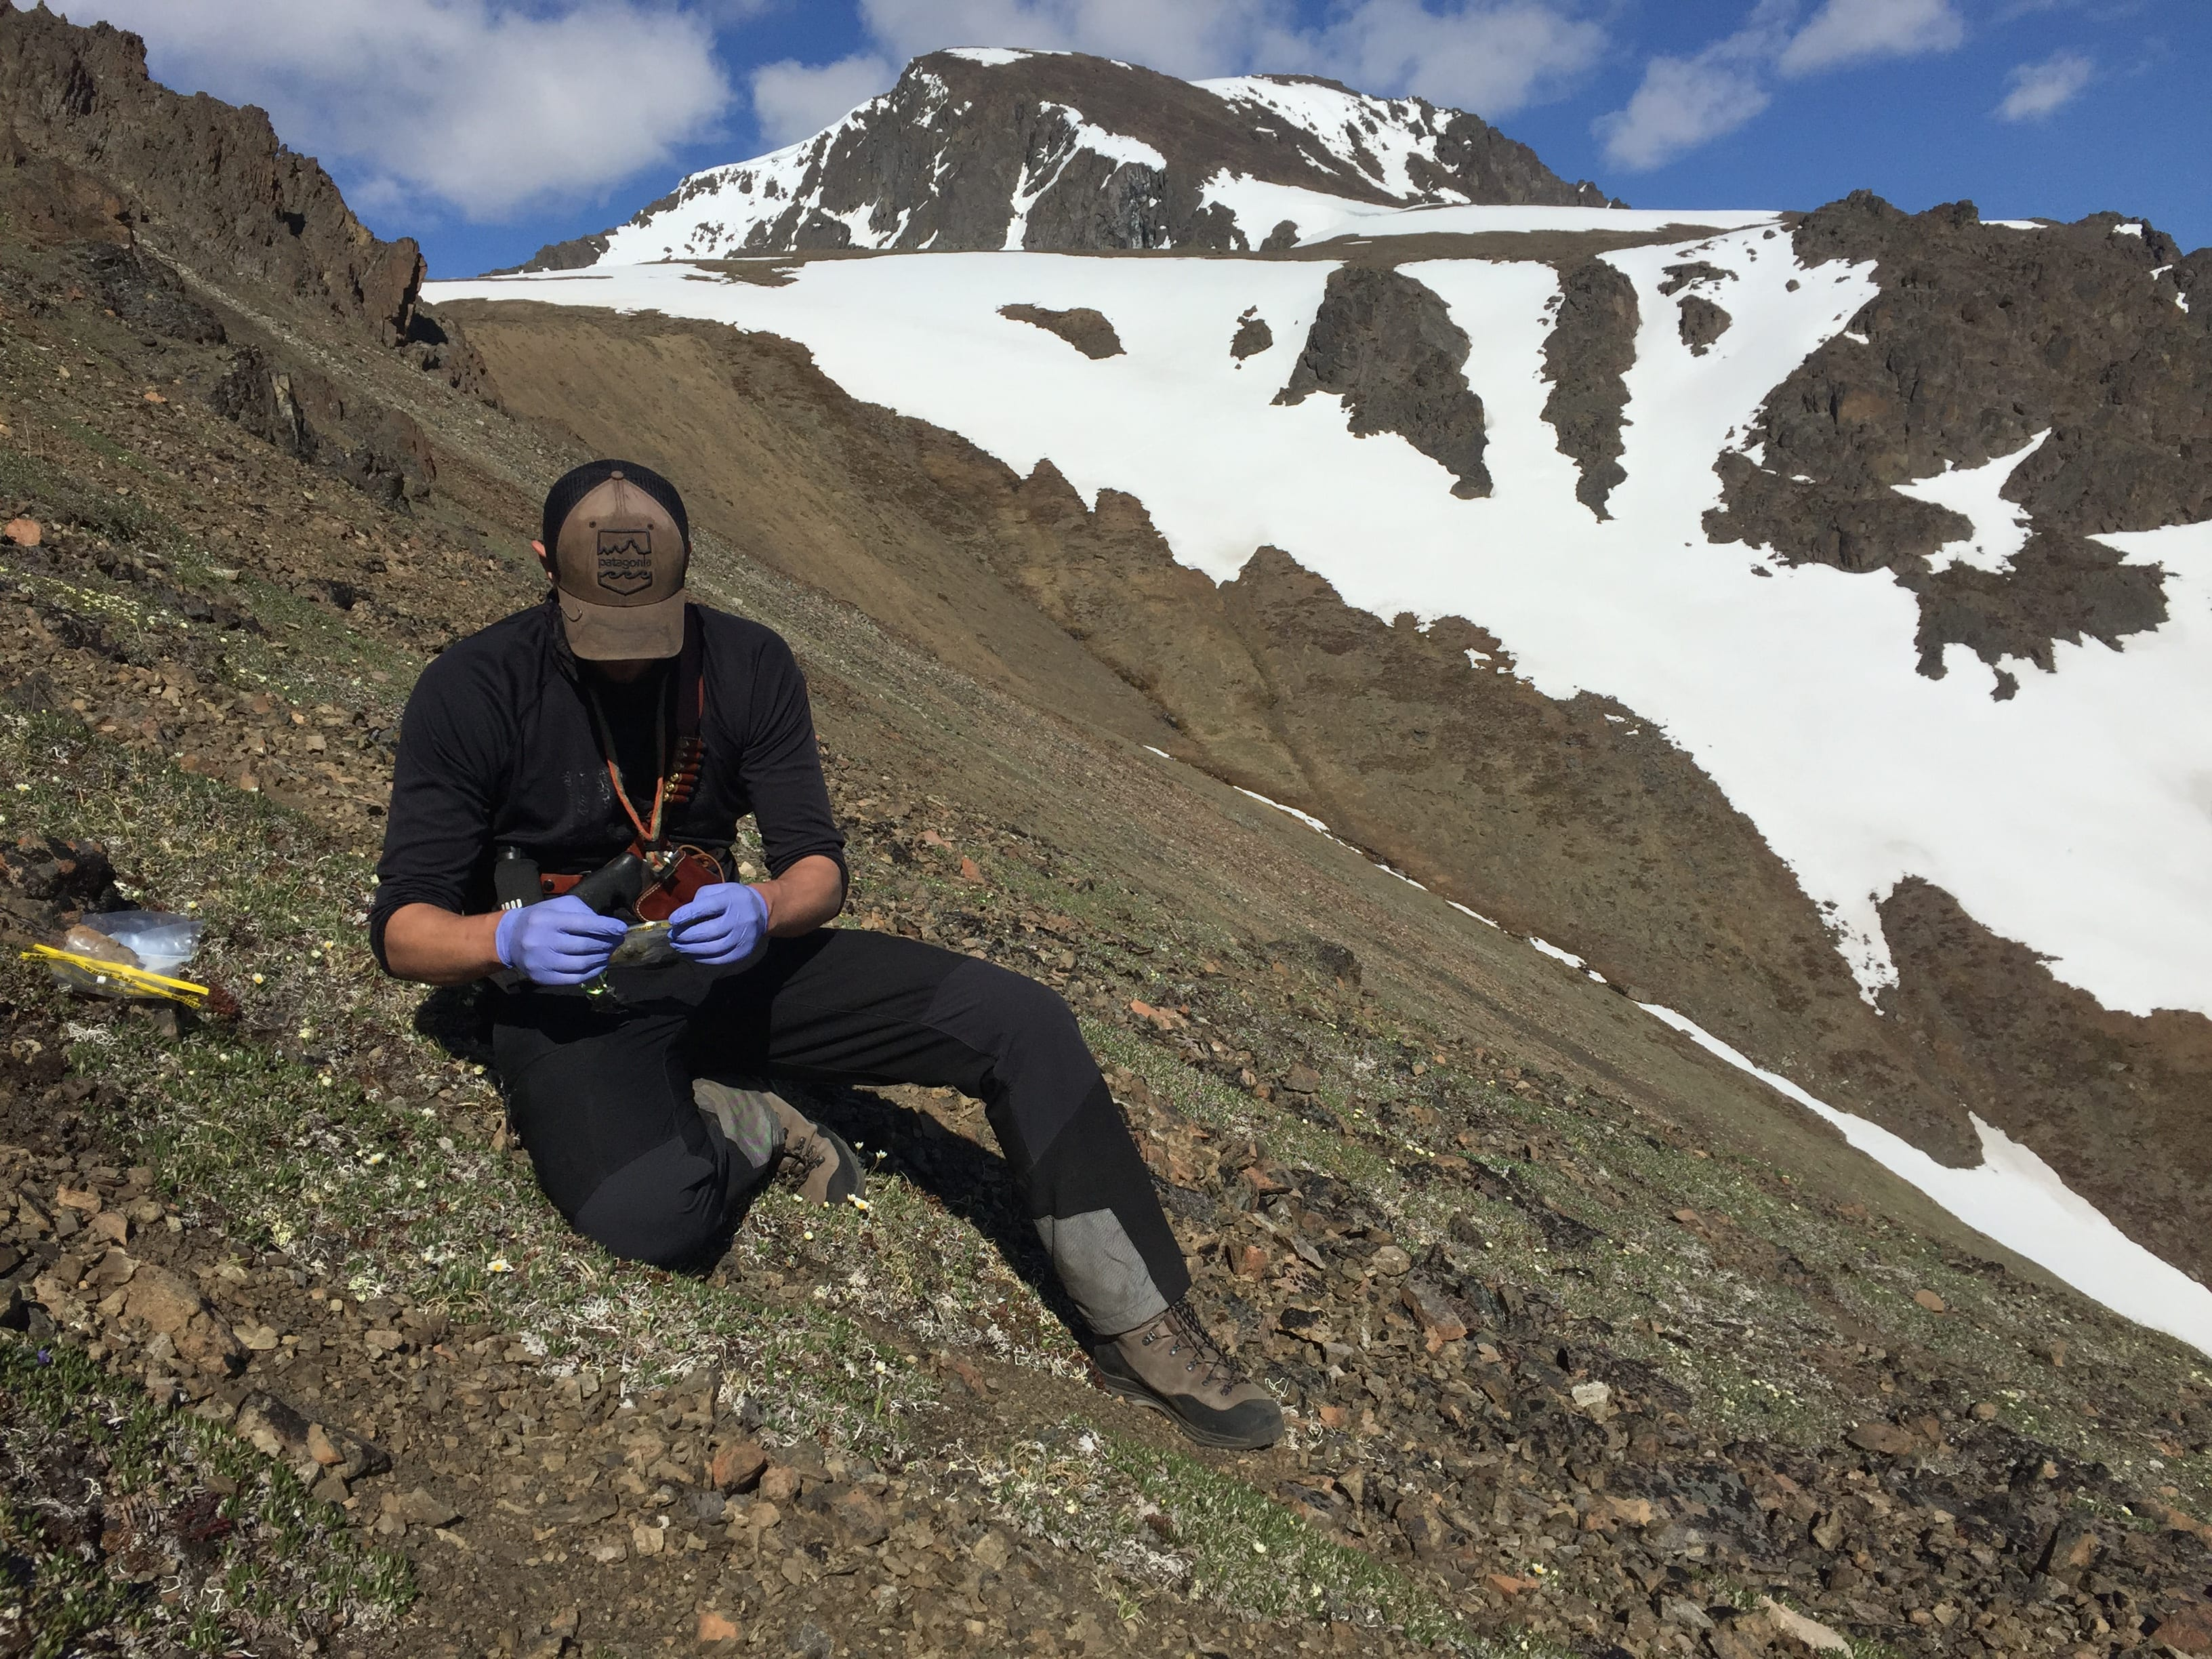 : Luke Metherell, a wildlife field technician and undergraduate student at UAA, spent most of his summer observing Dall sheep in the Chugach Mountains (Photo courtesy of Luke Metherell / Alaska Department of Fish and Game).